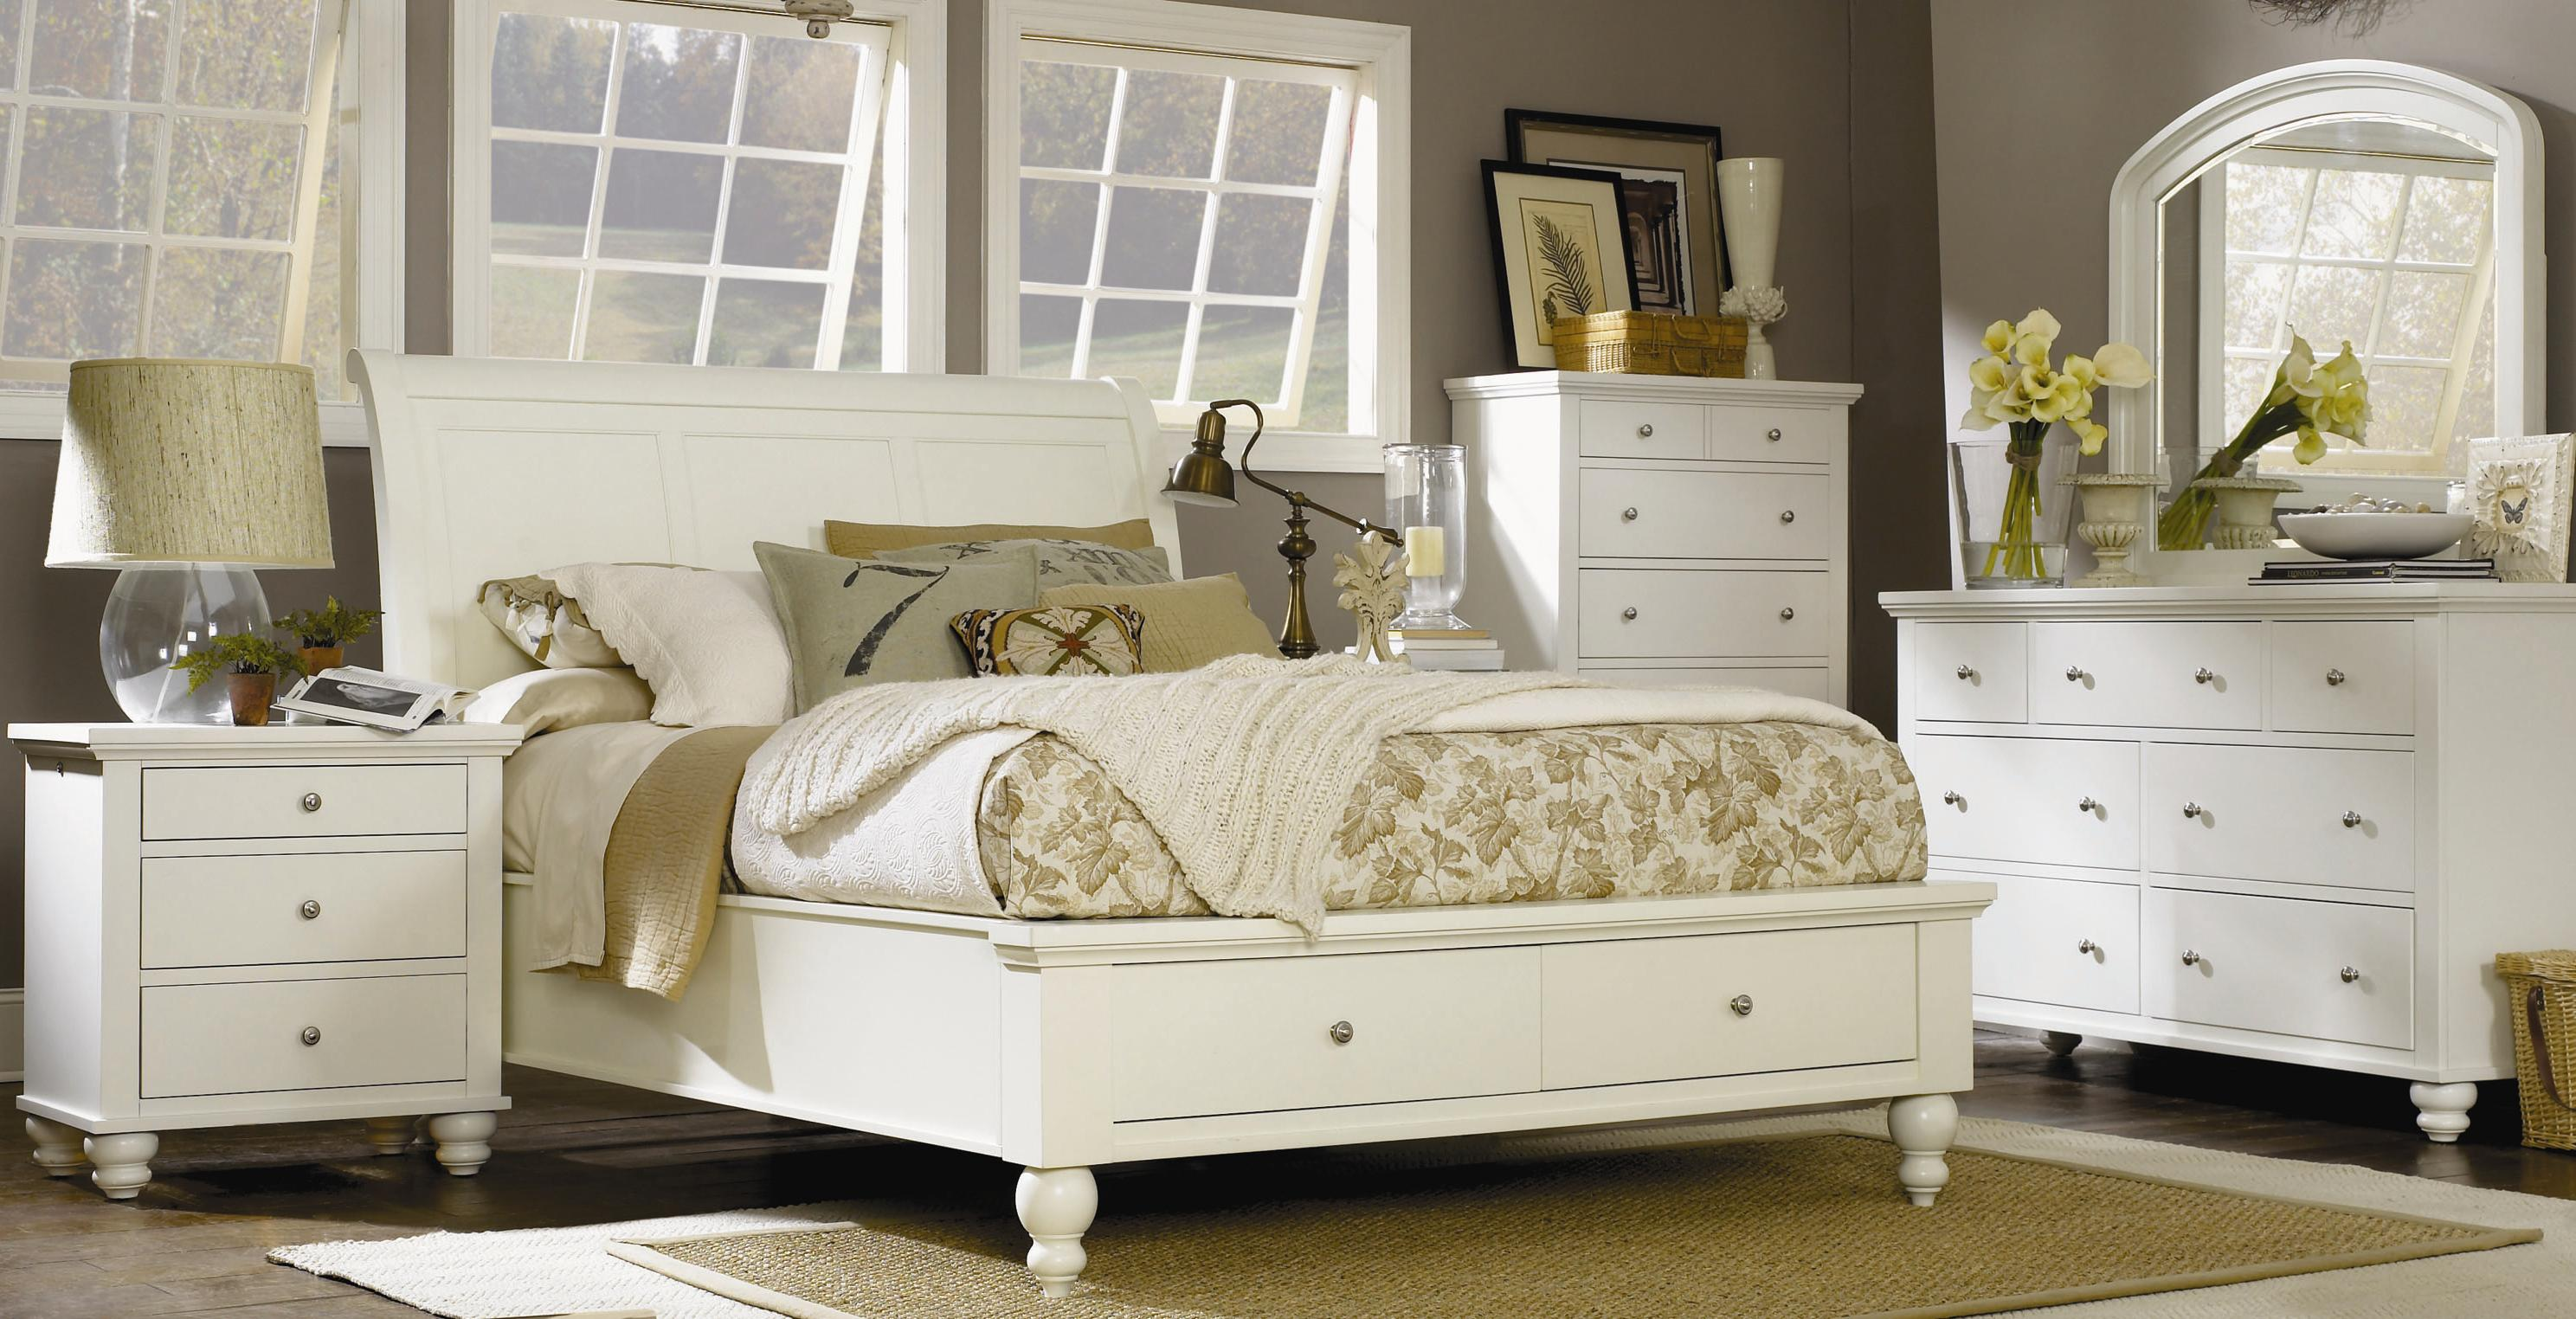 Aspenhome Cambridge King Size Bed with Sleigh Headboard & Drawer